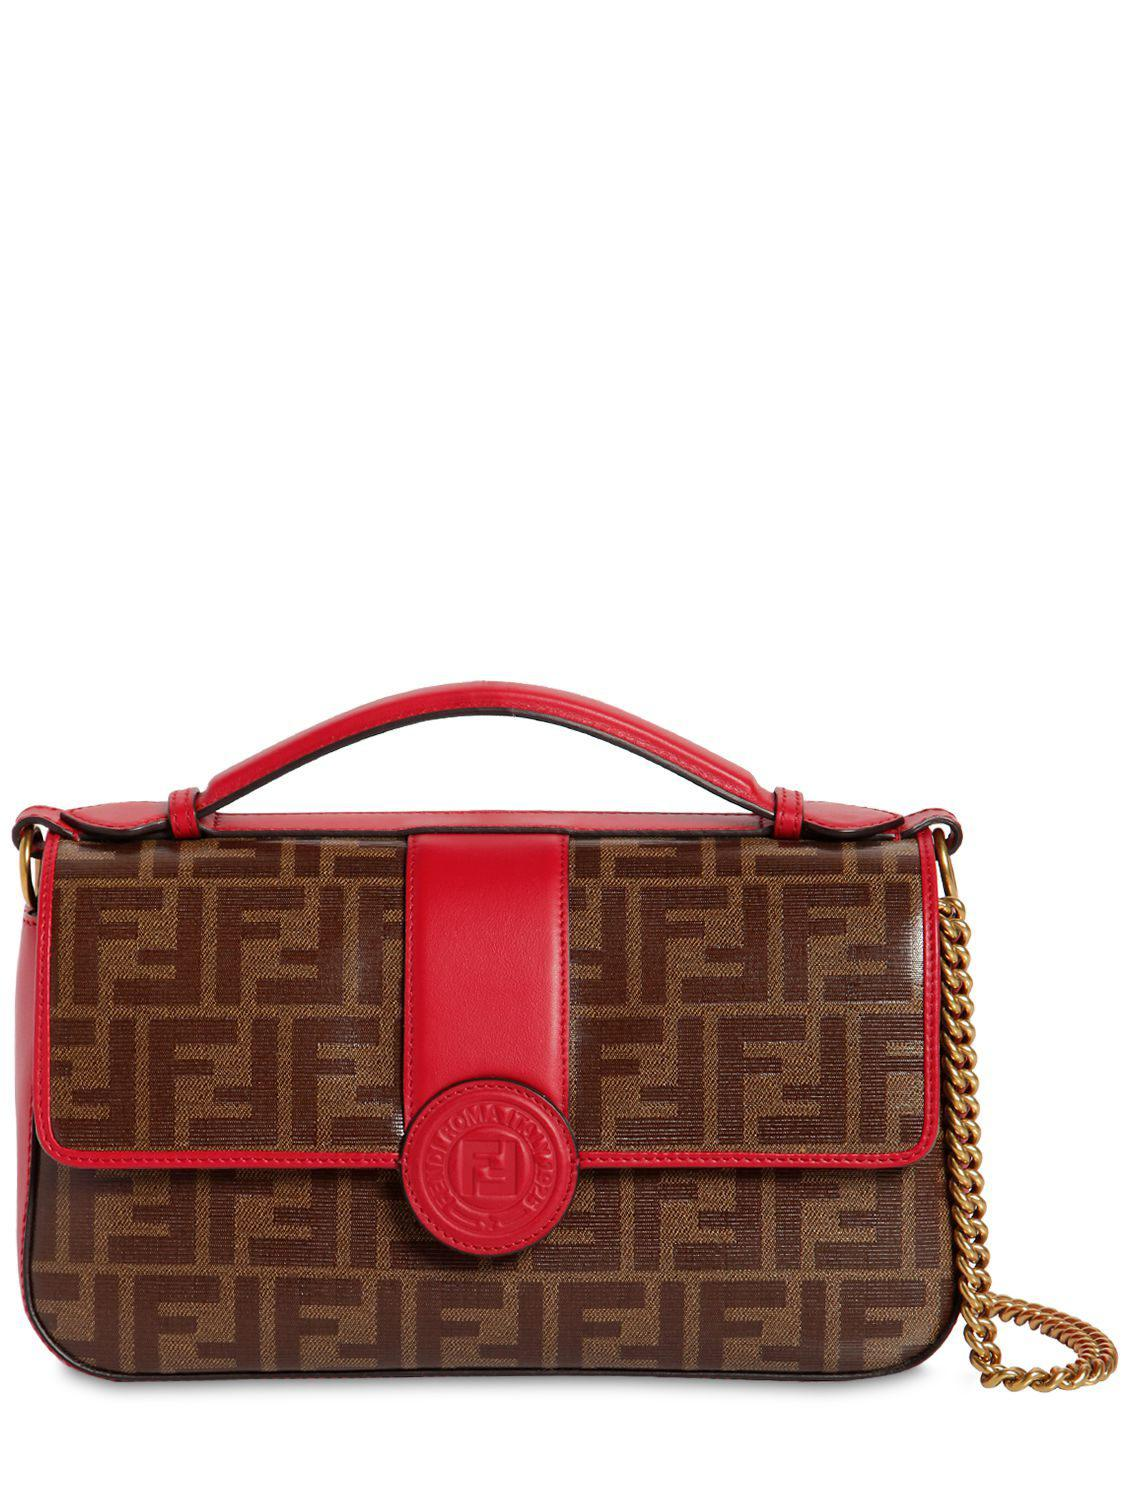 5143e7e28a37 Lyst - Fendi Double Ff Baguette Leather Shoulder Bag in Red - Save 16%